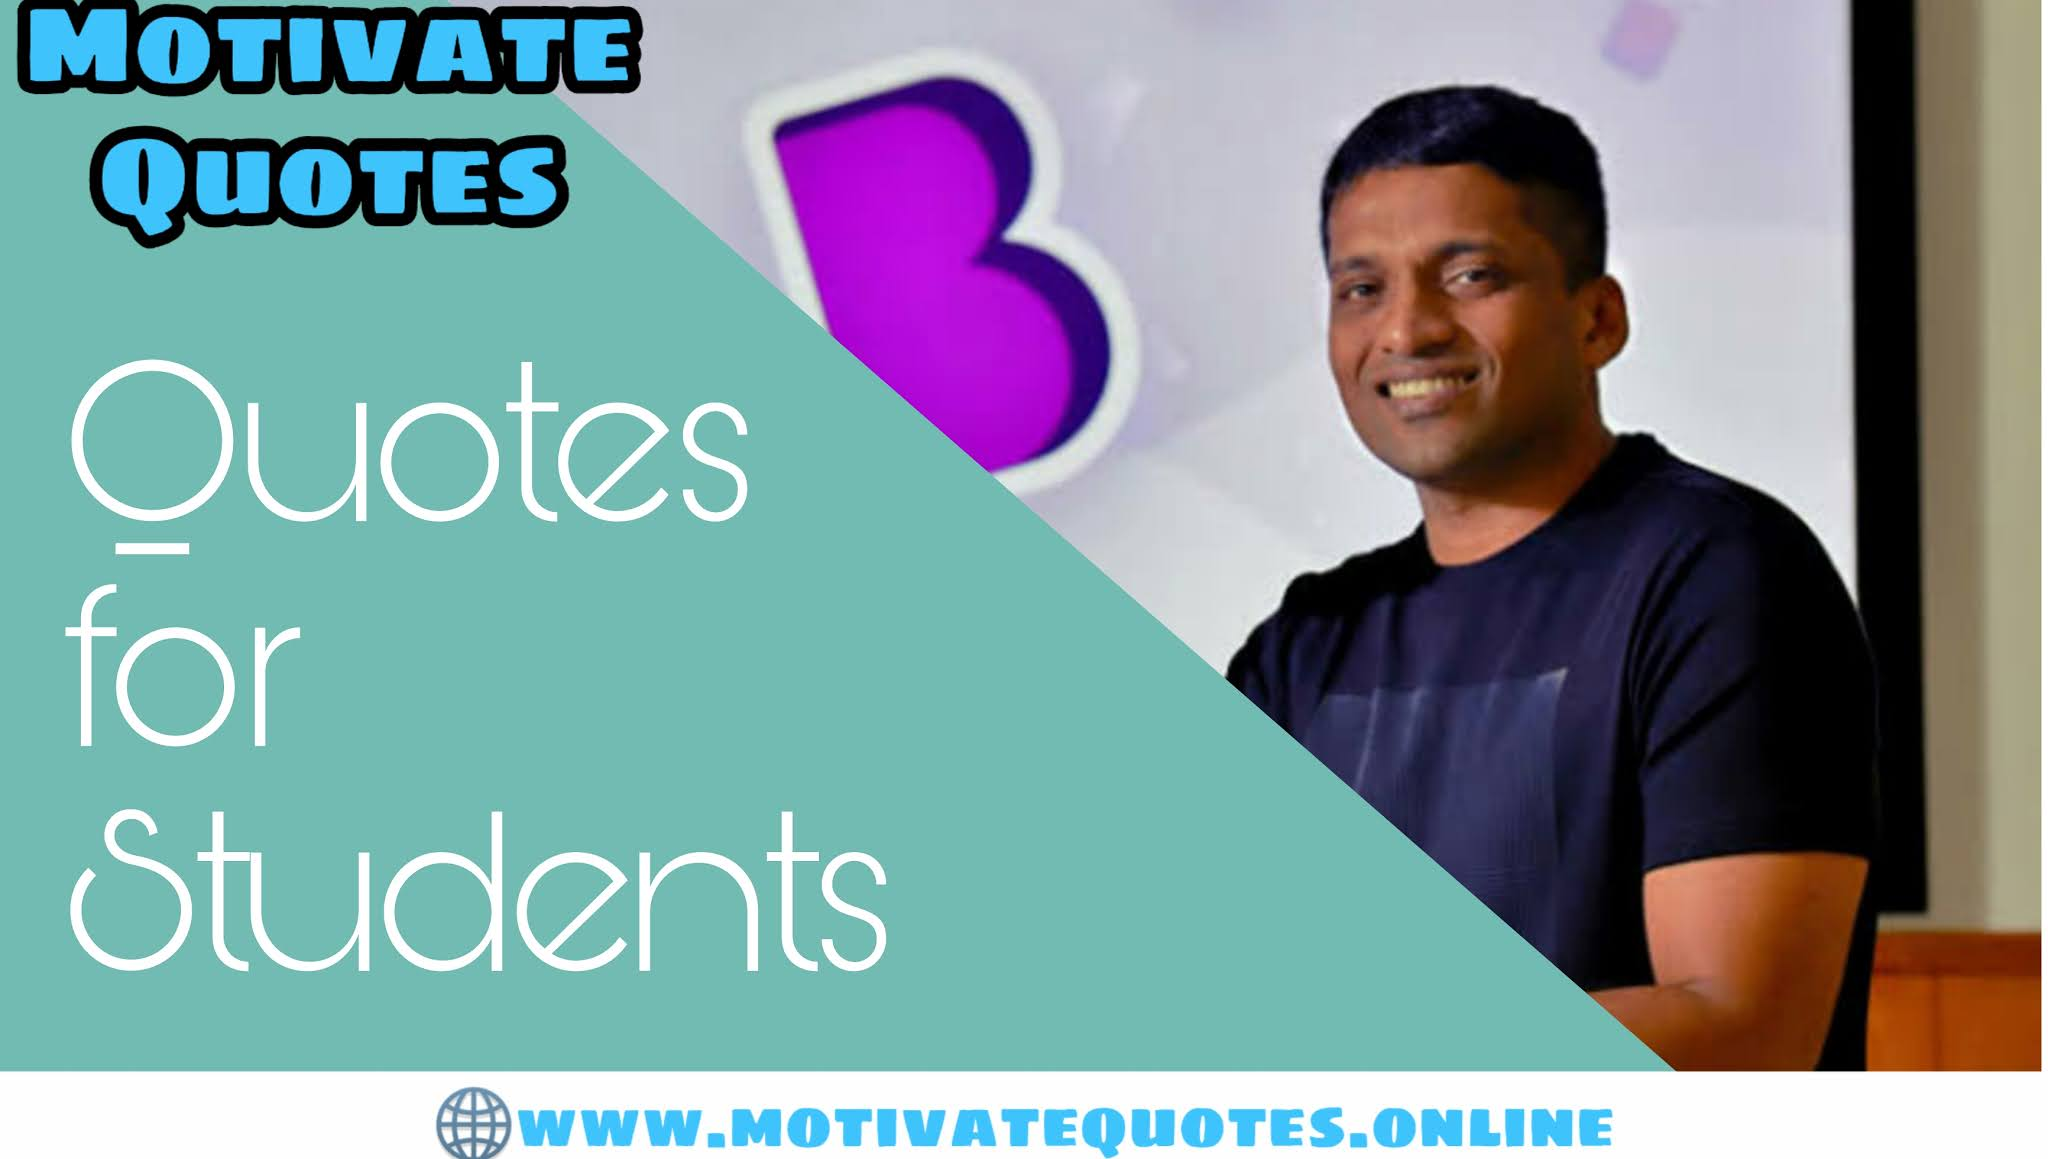 Motivational Quotes for students by Byju Raveendran founder and CEO of Byjus learning platform